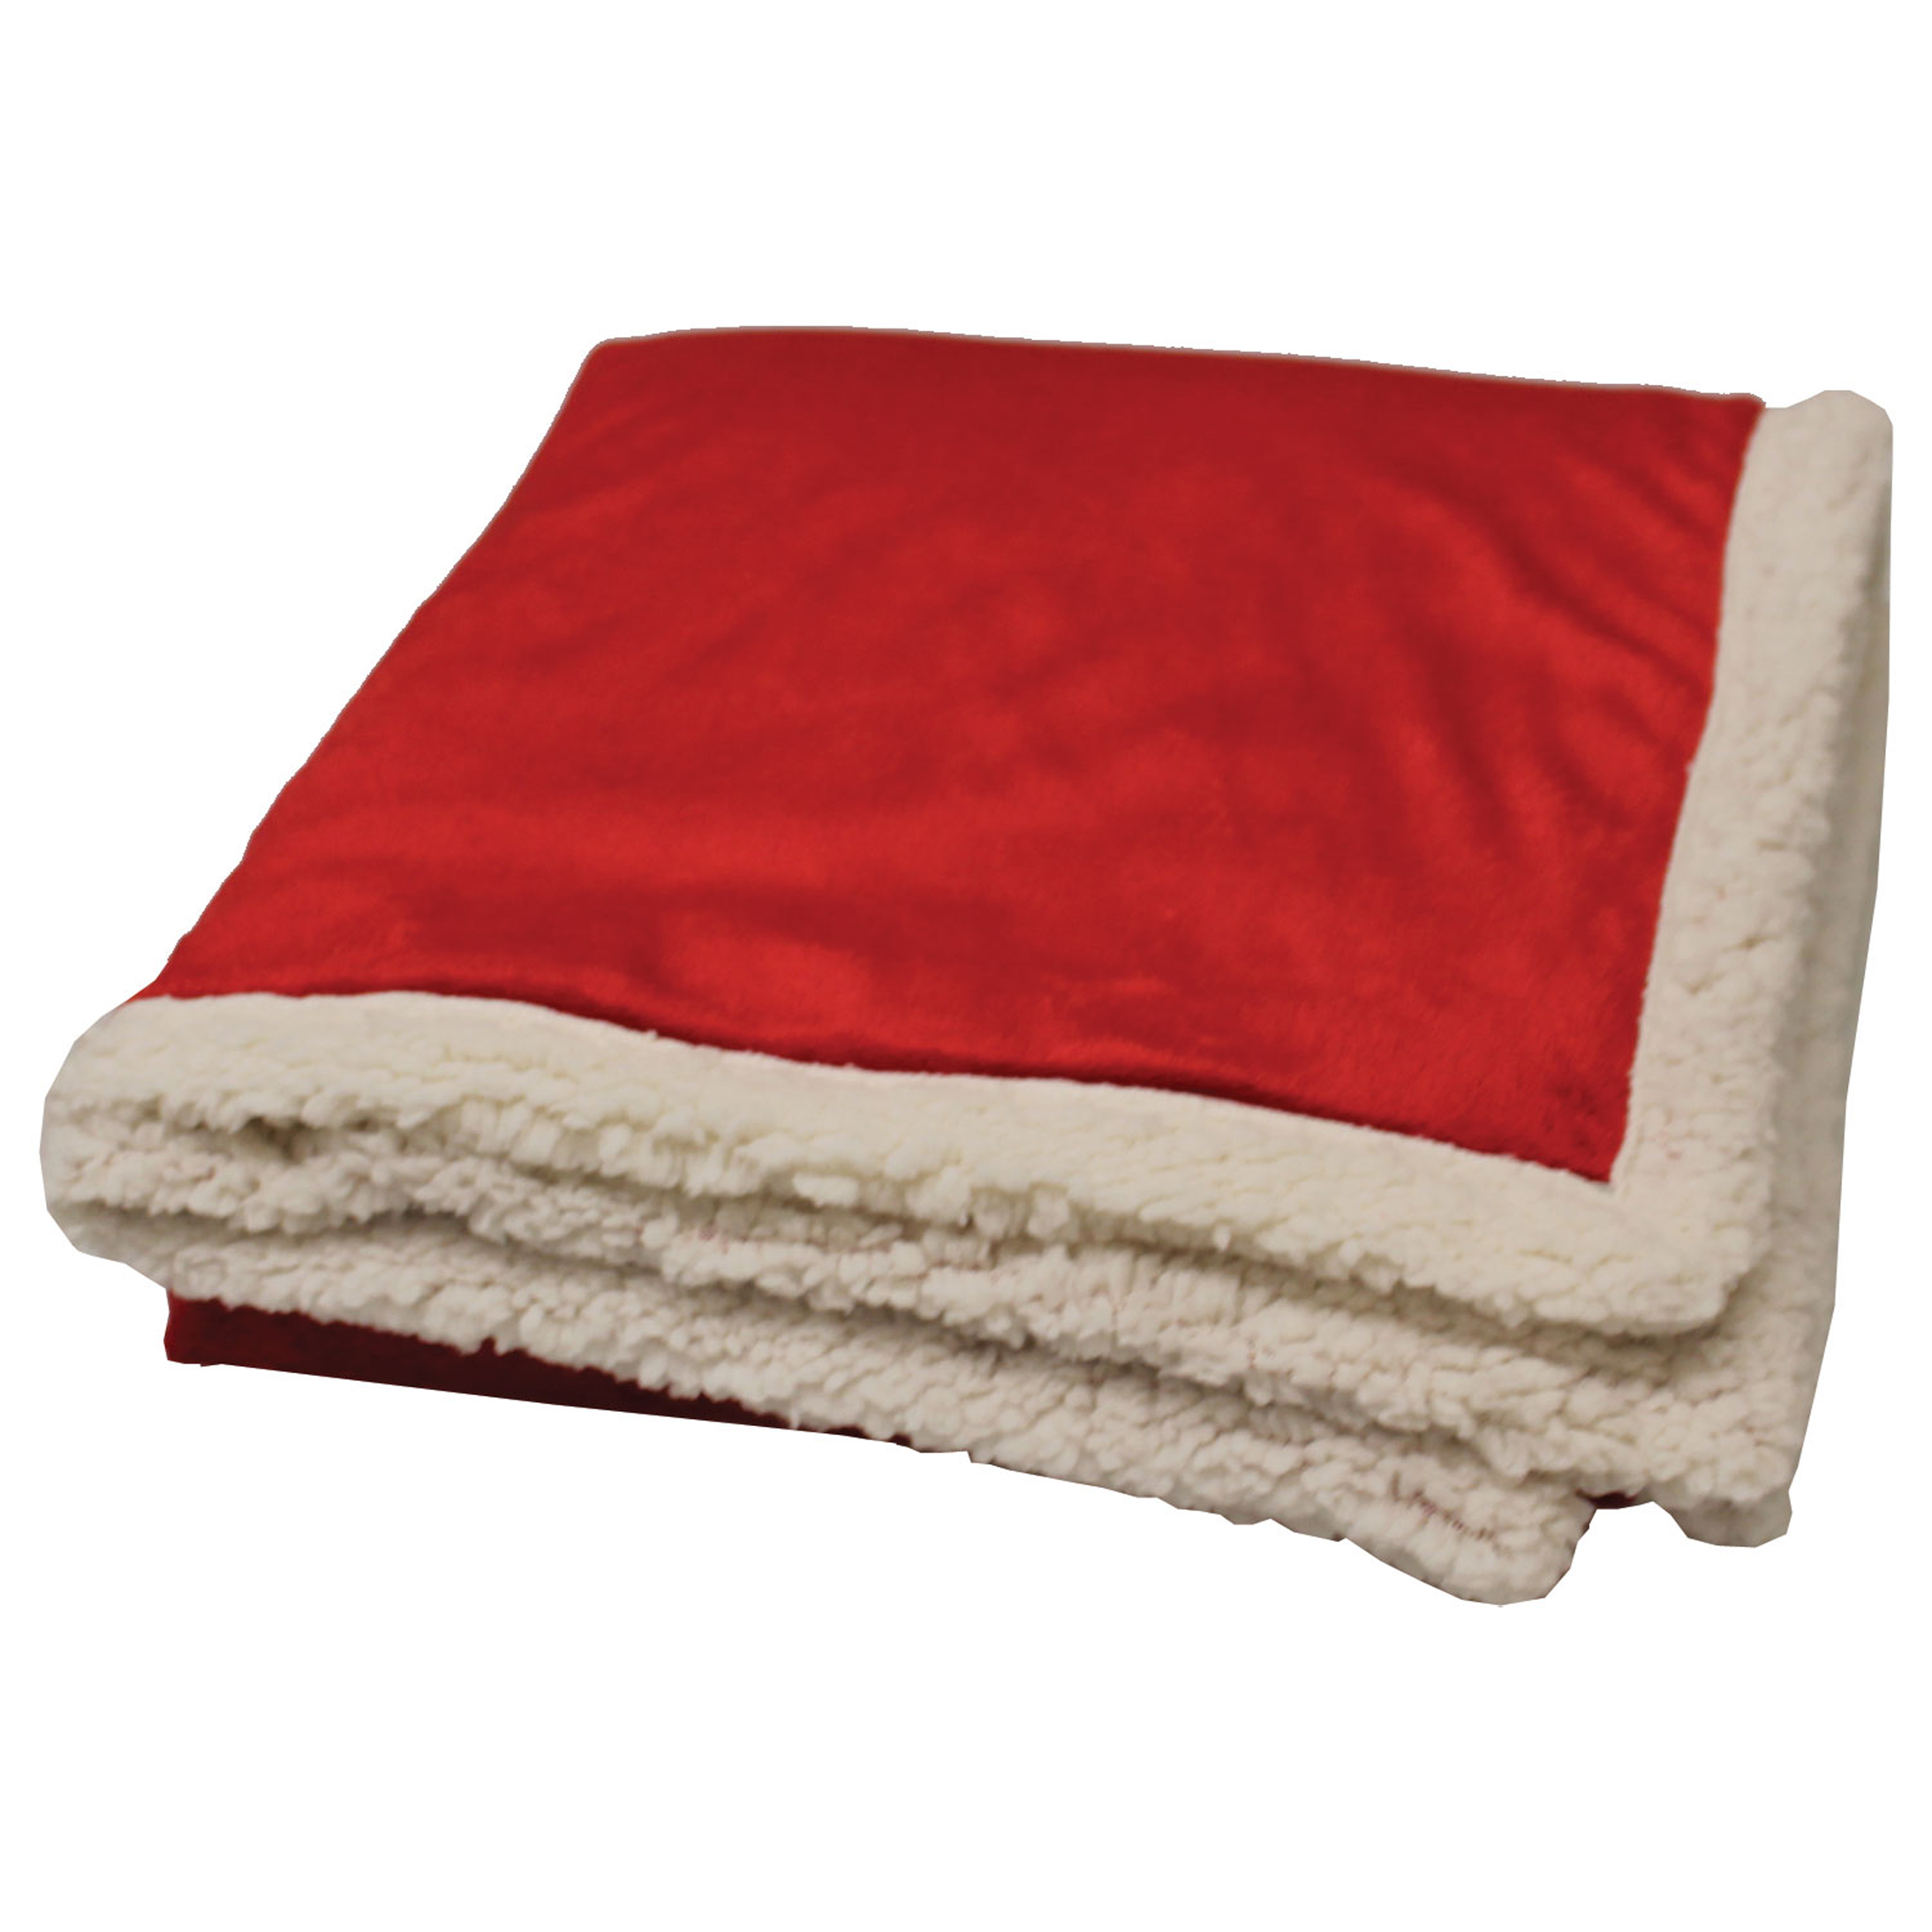 challenger_lambswool_red